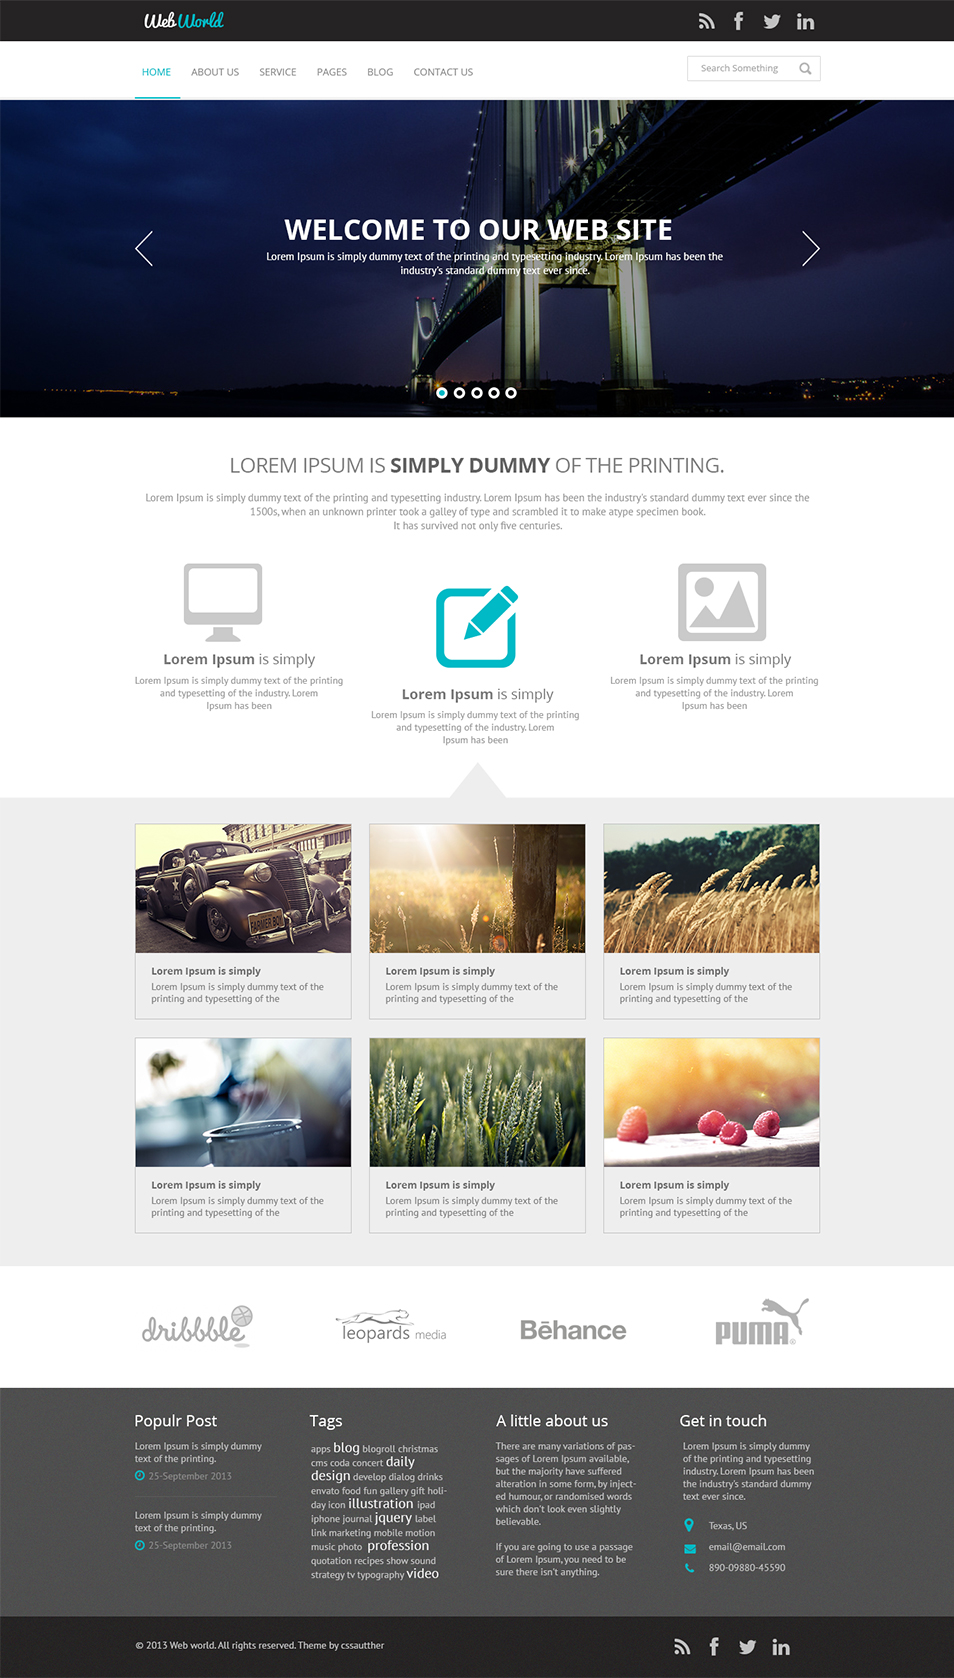 12 free business website template psd images business for Website layout design software free download